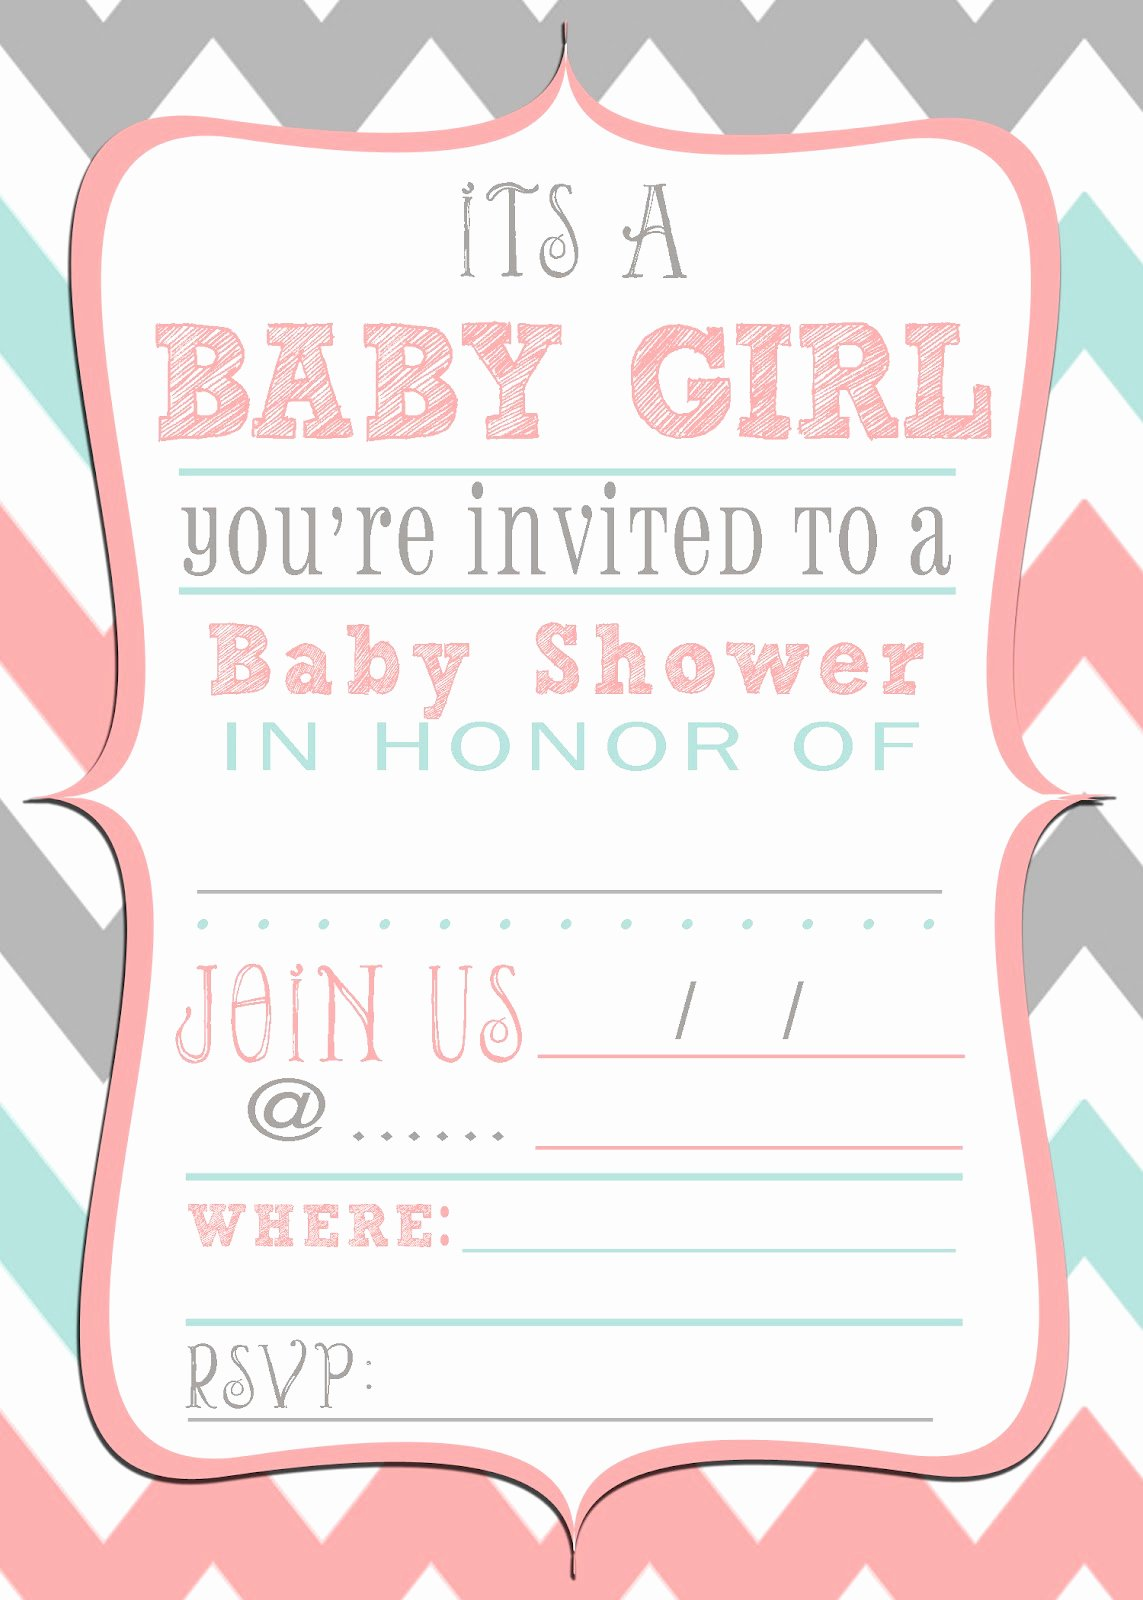 Free Baby Shower Templates Best Of Mrs This and that Baby Shower Banner Free Downloads